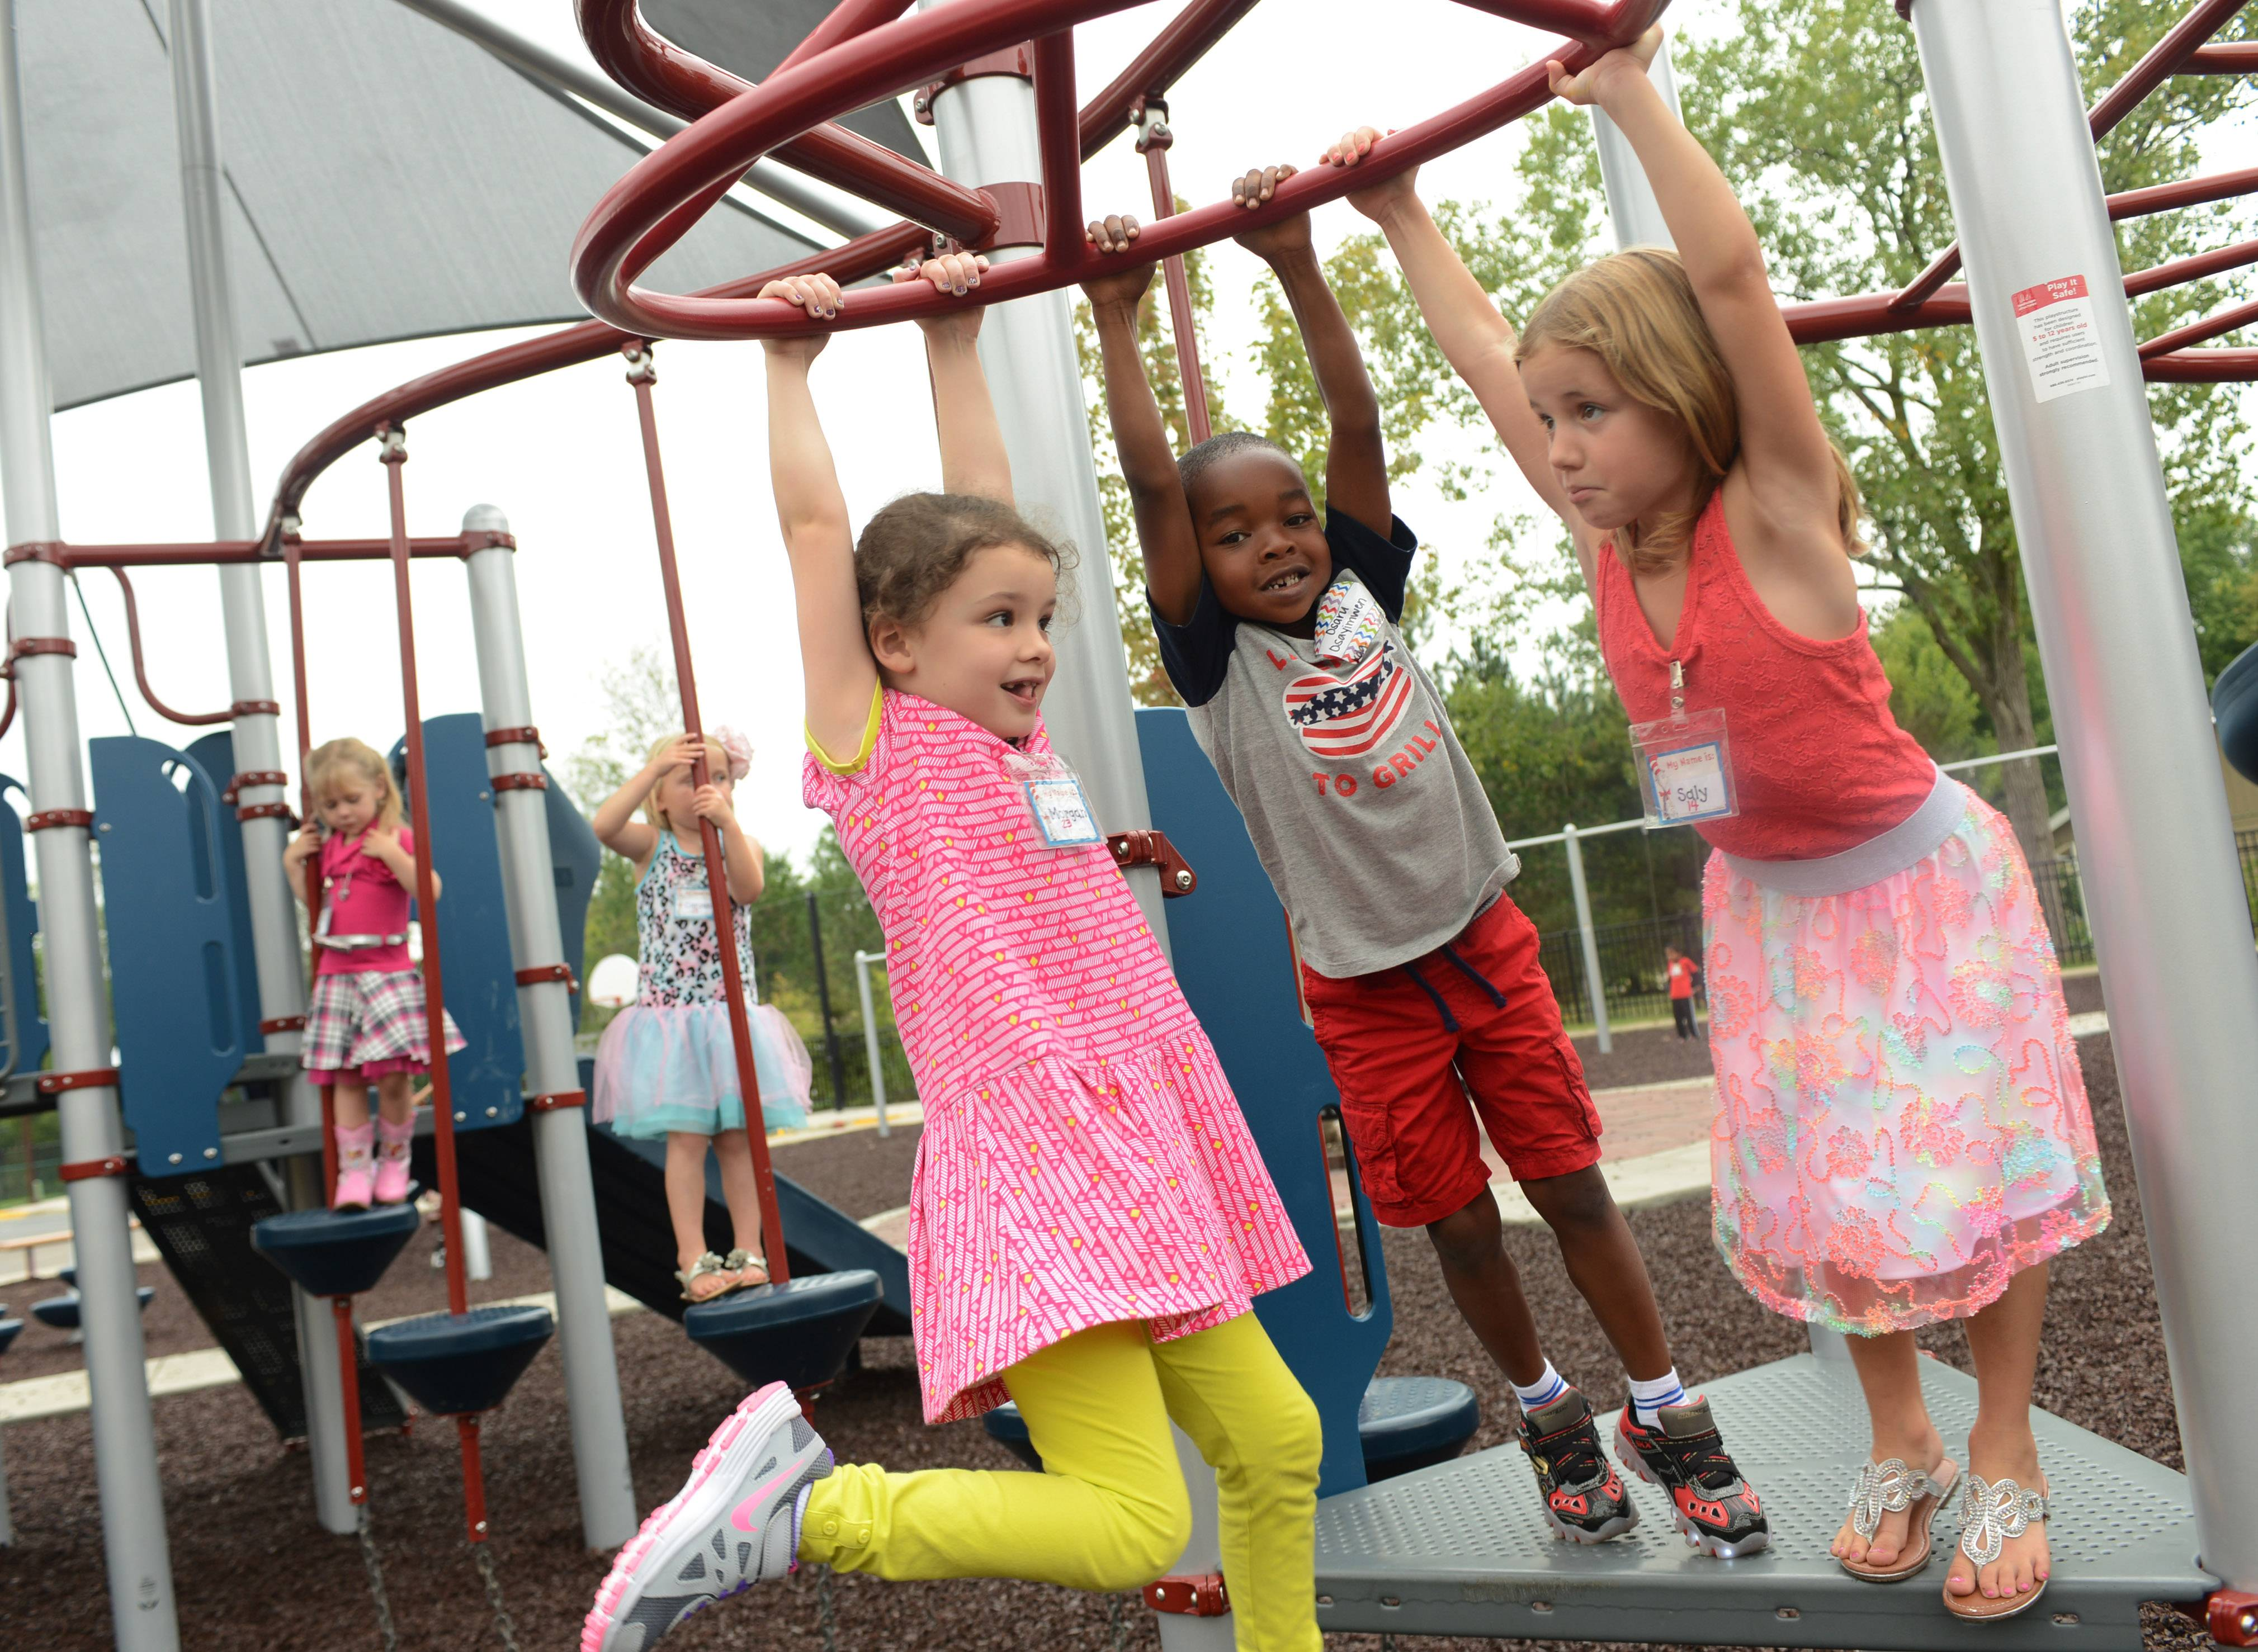 Oak Grove Elementary School kindergarten students test out the new playground Friday during first day of school in Green Oaks.